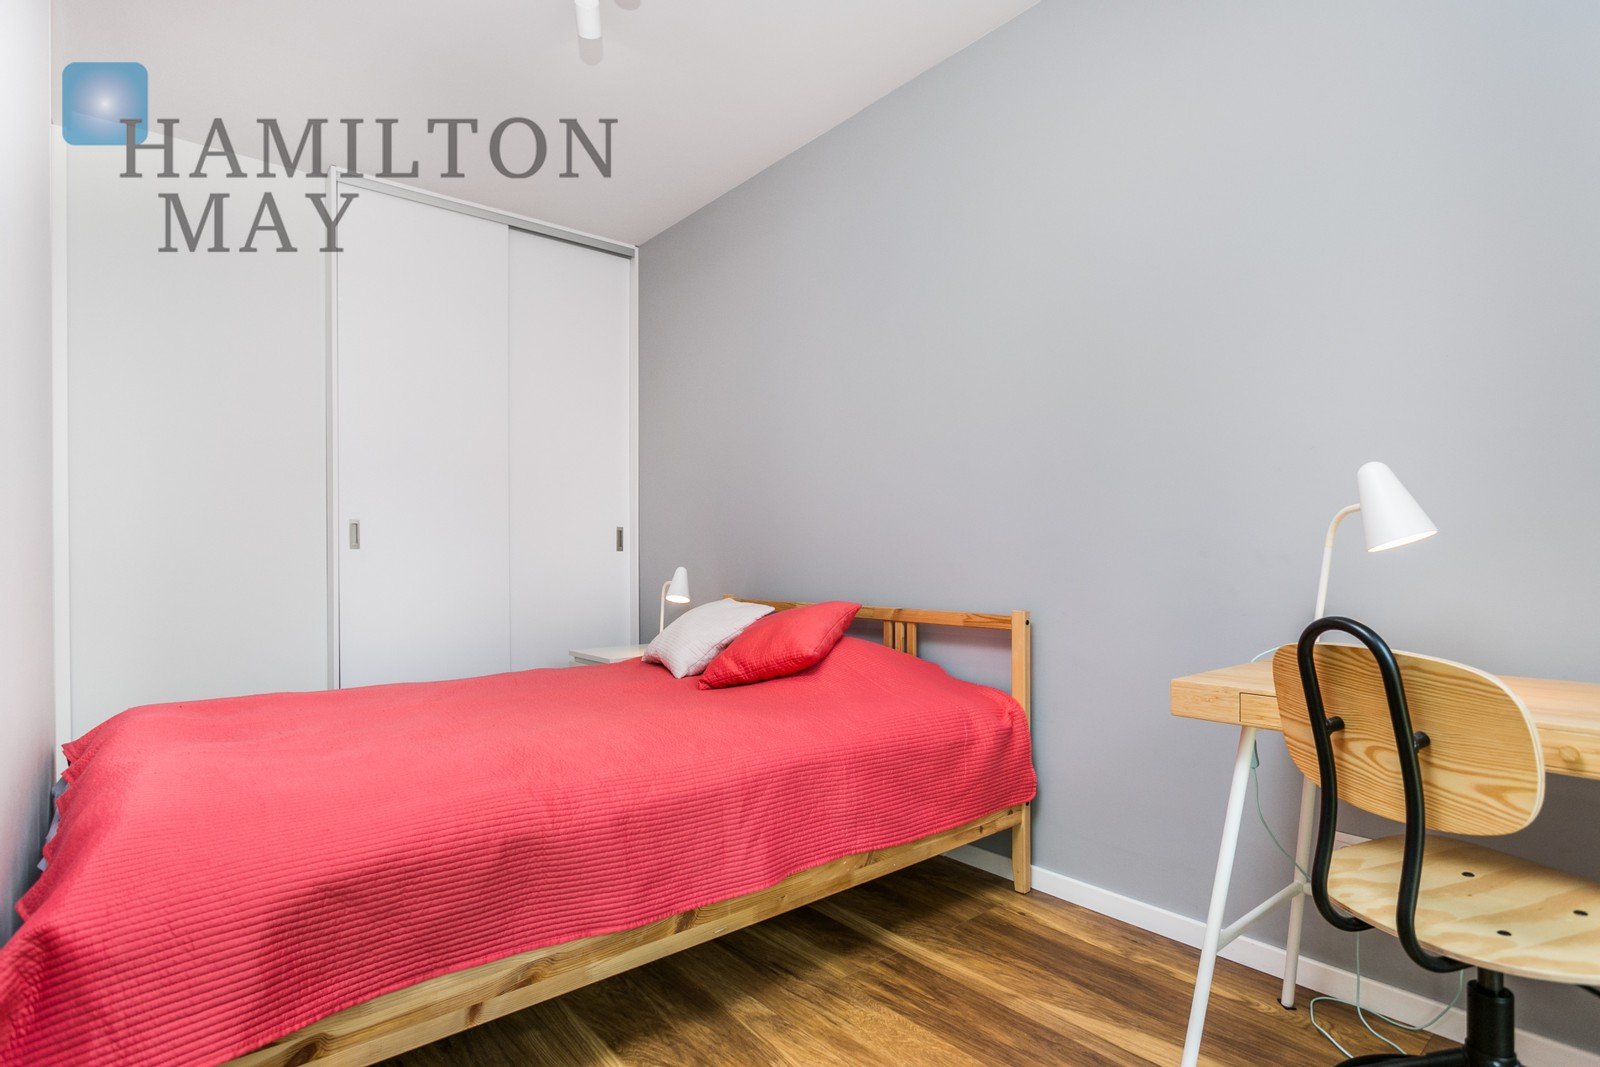 A Modern And Quiet One Bedroom Apartment With Small Garden In The Vicinity Of The Center Of Krakow Gen Henryka Dabrowskiego Krakow For Rental Ref 13928 Hamilton May